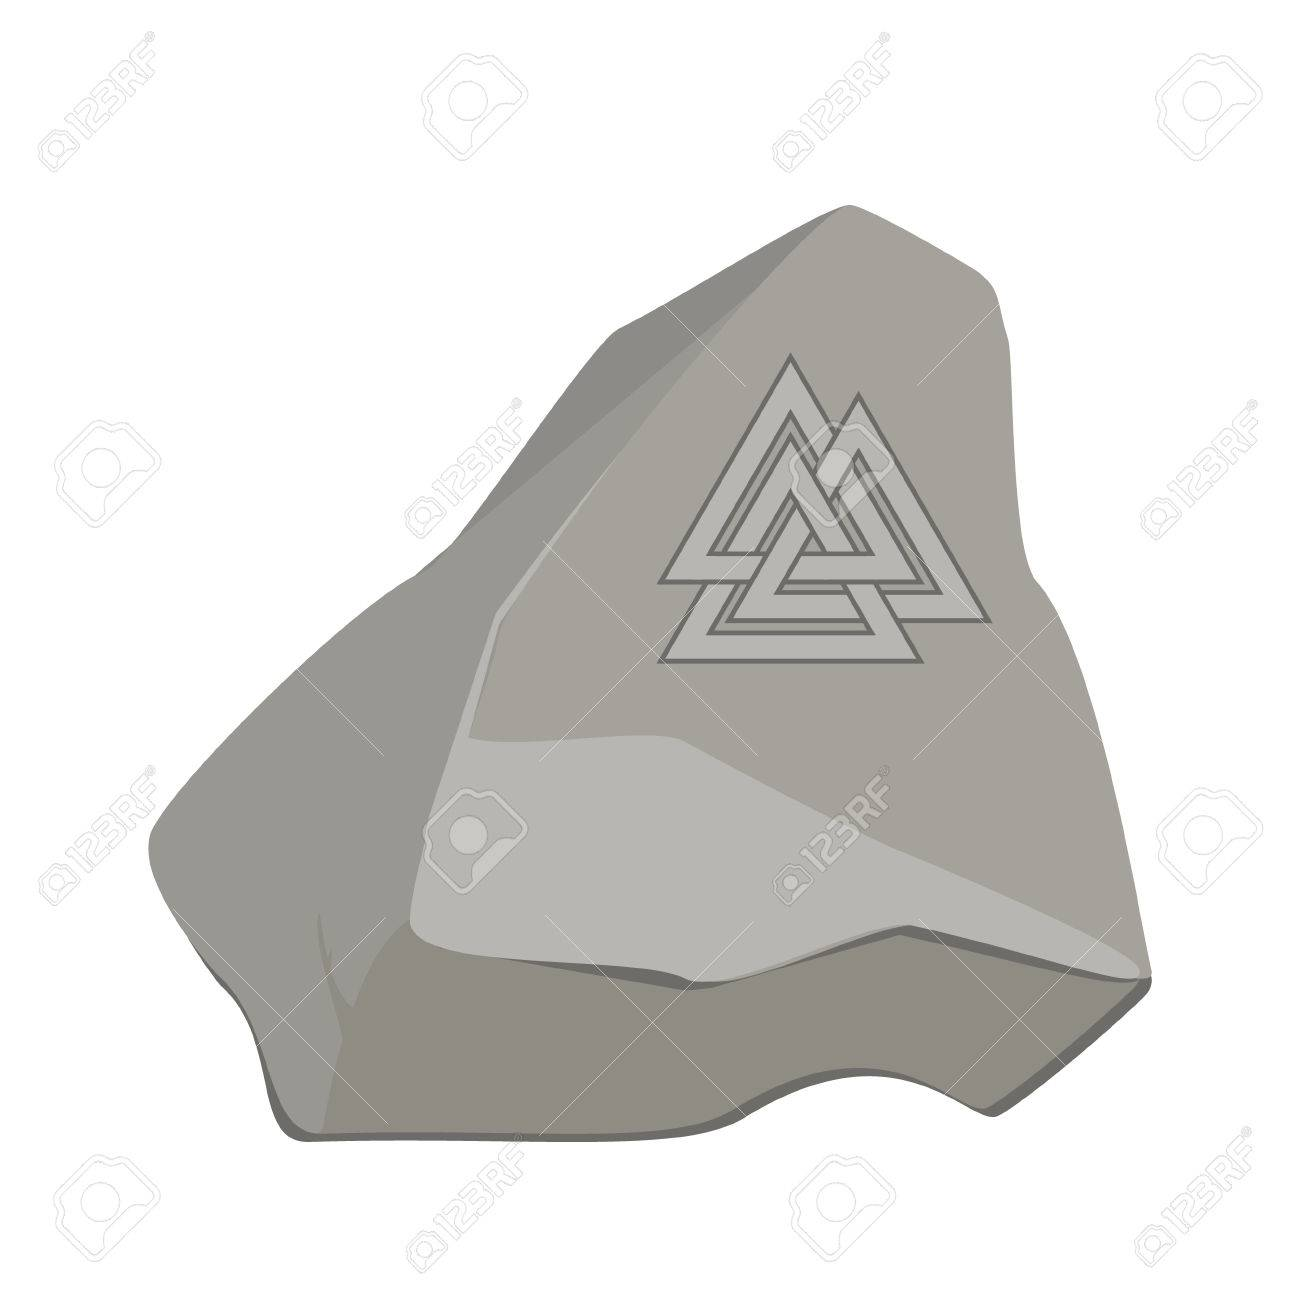 Valknut symbol of the world end of the tree yggdrasil on stone valknut symbol of the world end of the tree yggdrasil on stone rock sign buycottarizona